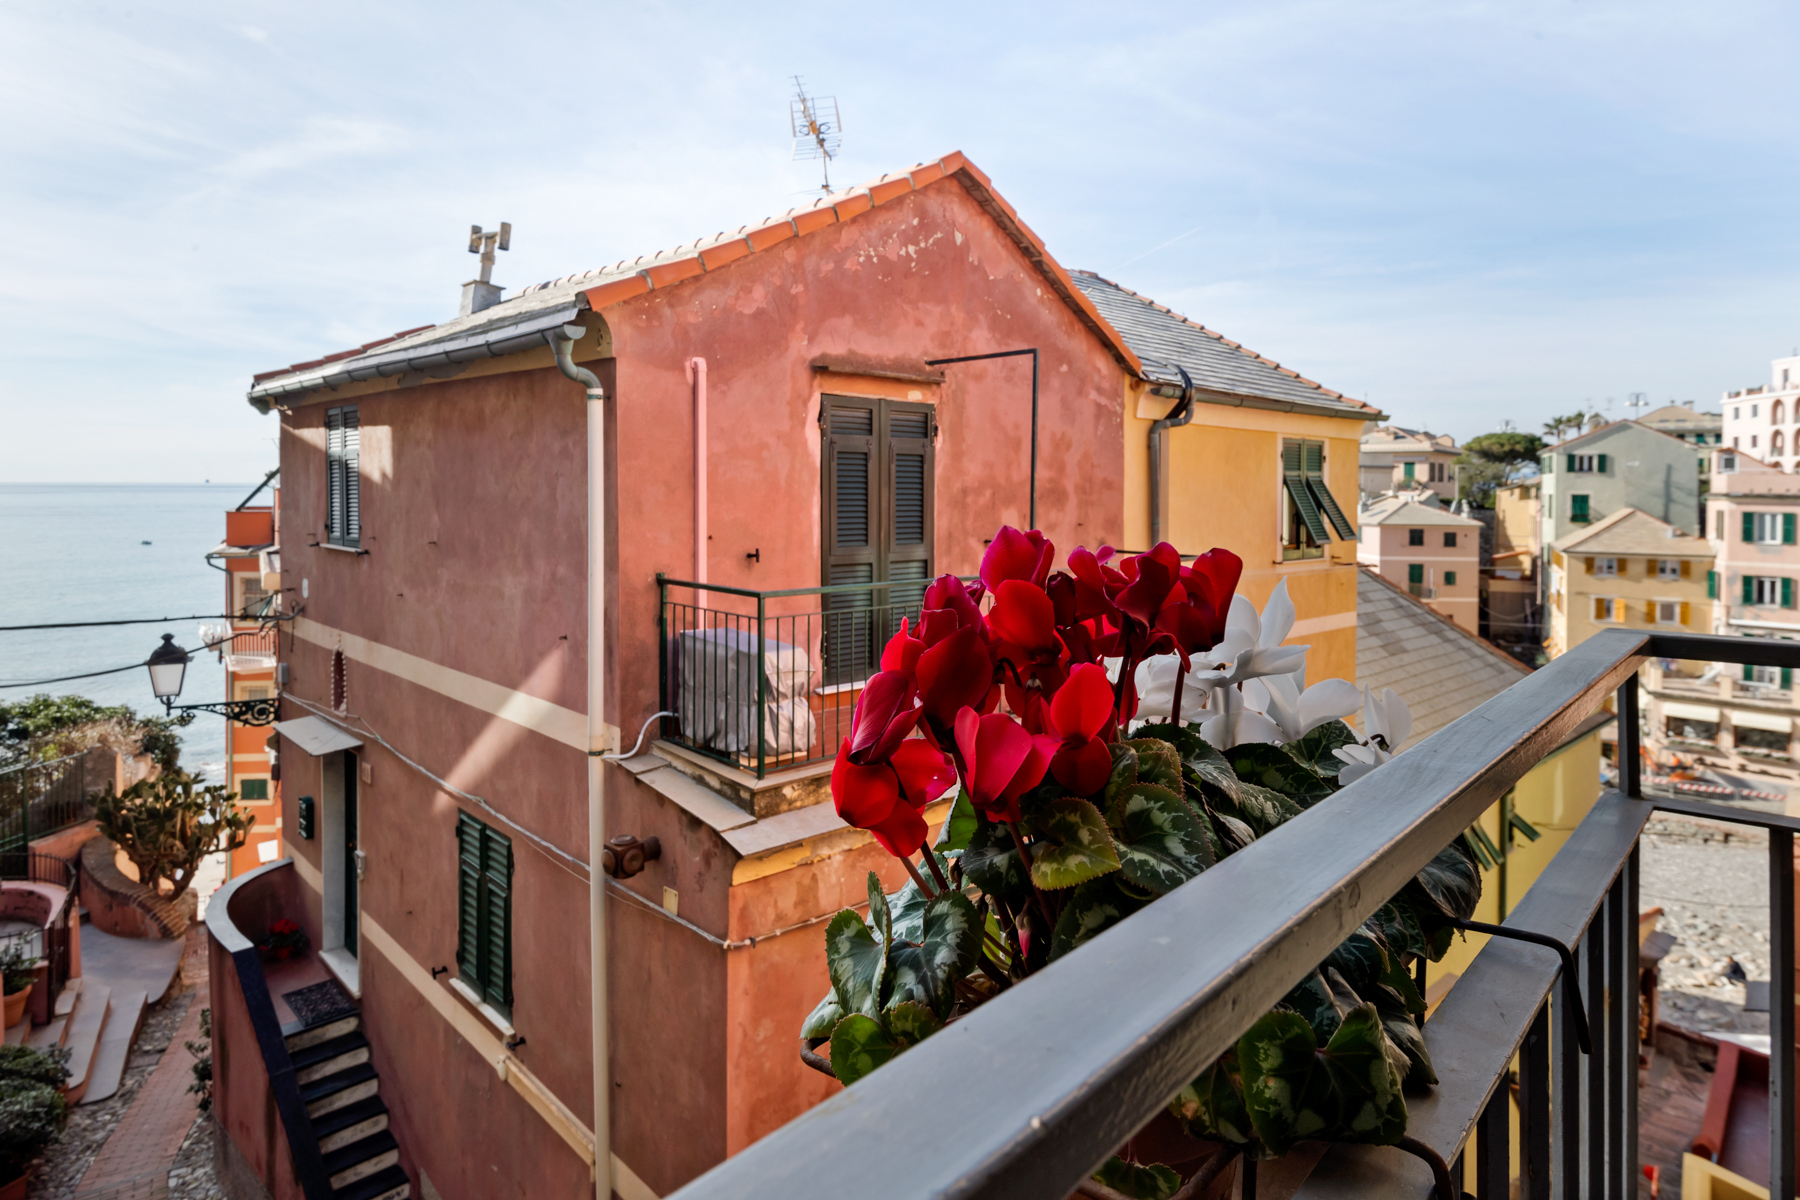 Single Family Homes for Sale at Inviting property by the sea in Boccadasse Genova, Genoa Italy